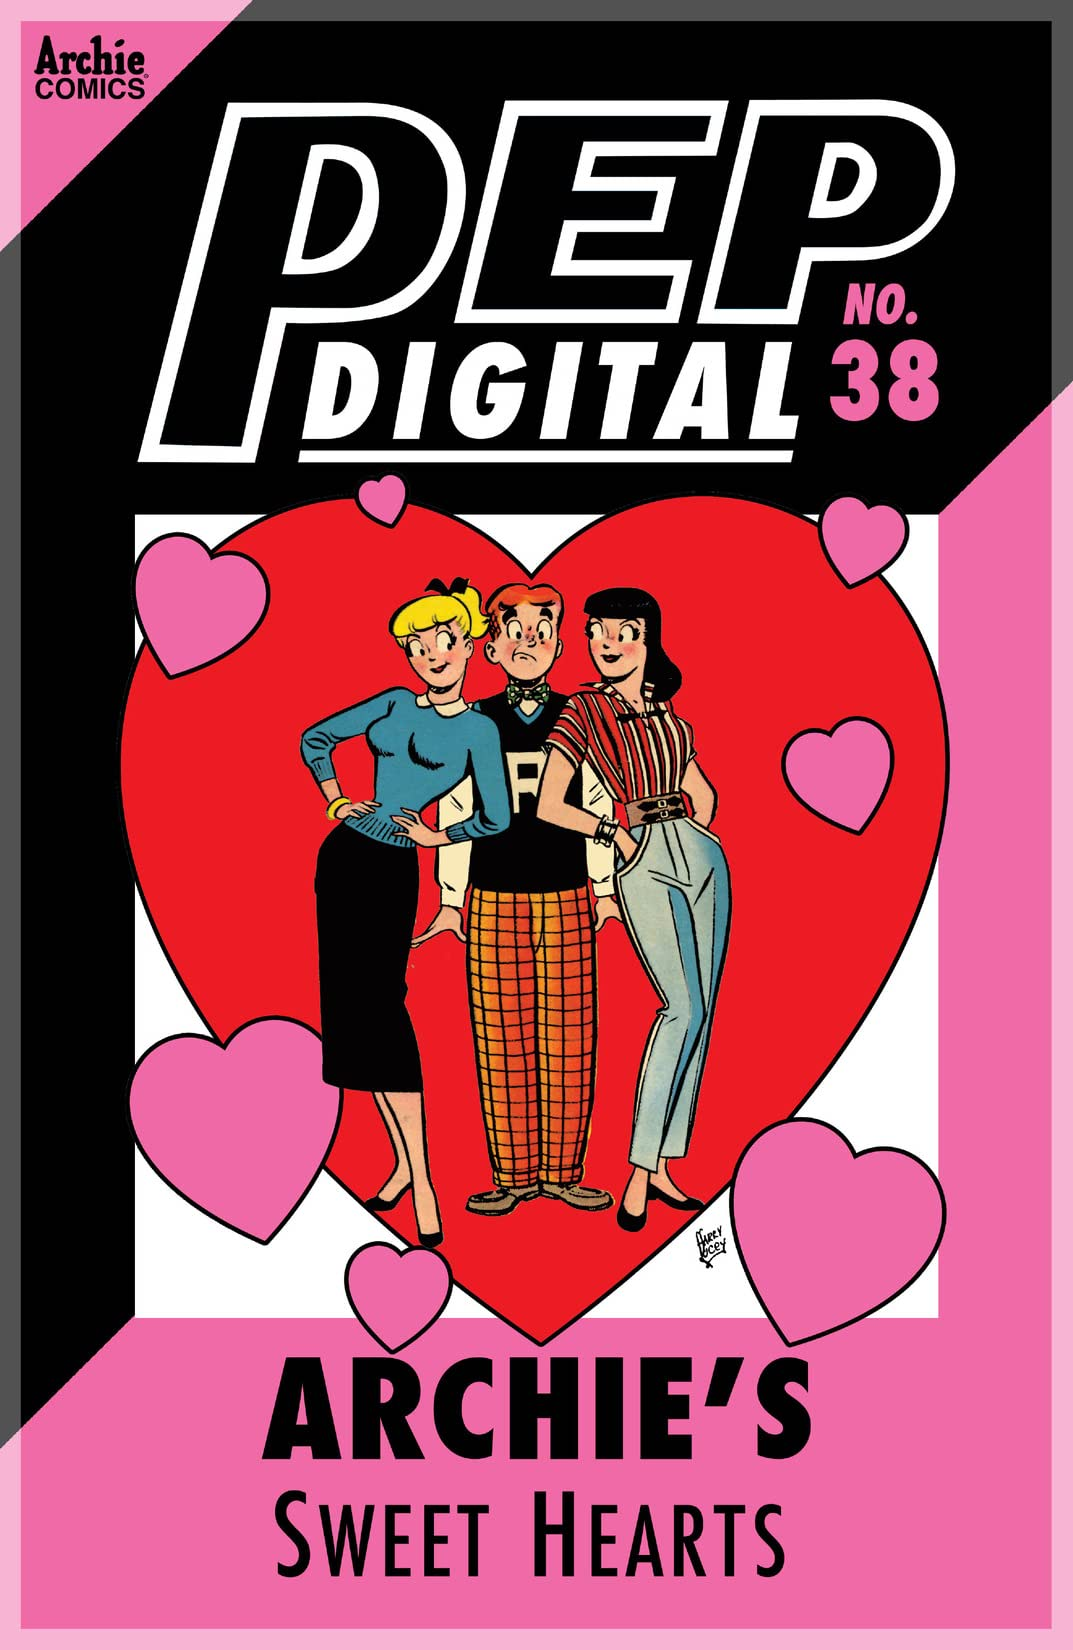 PEP Digital #38: Archie's Sweet Hearts